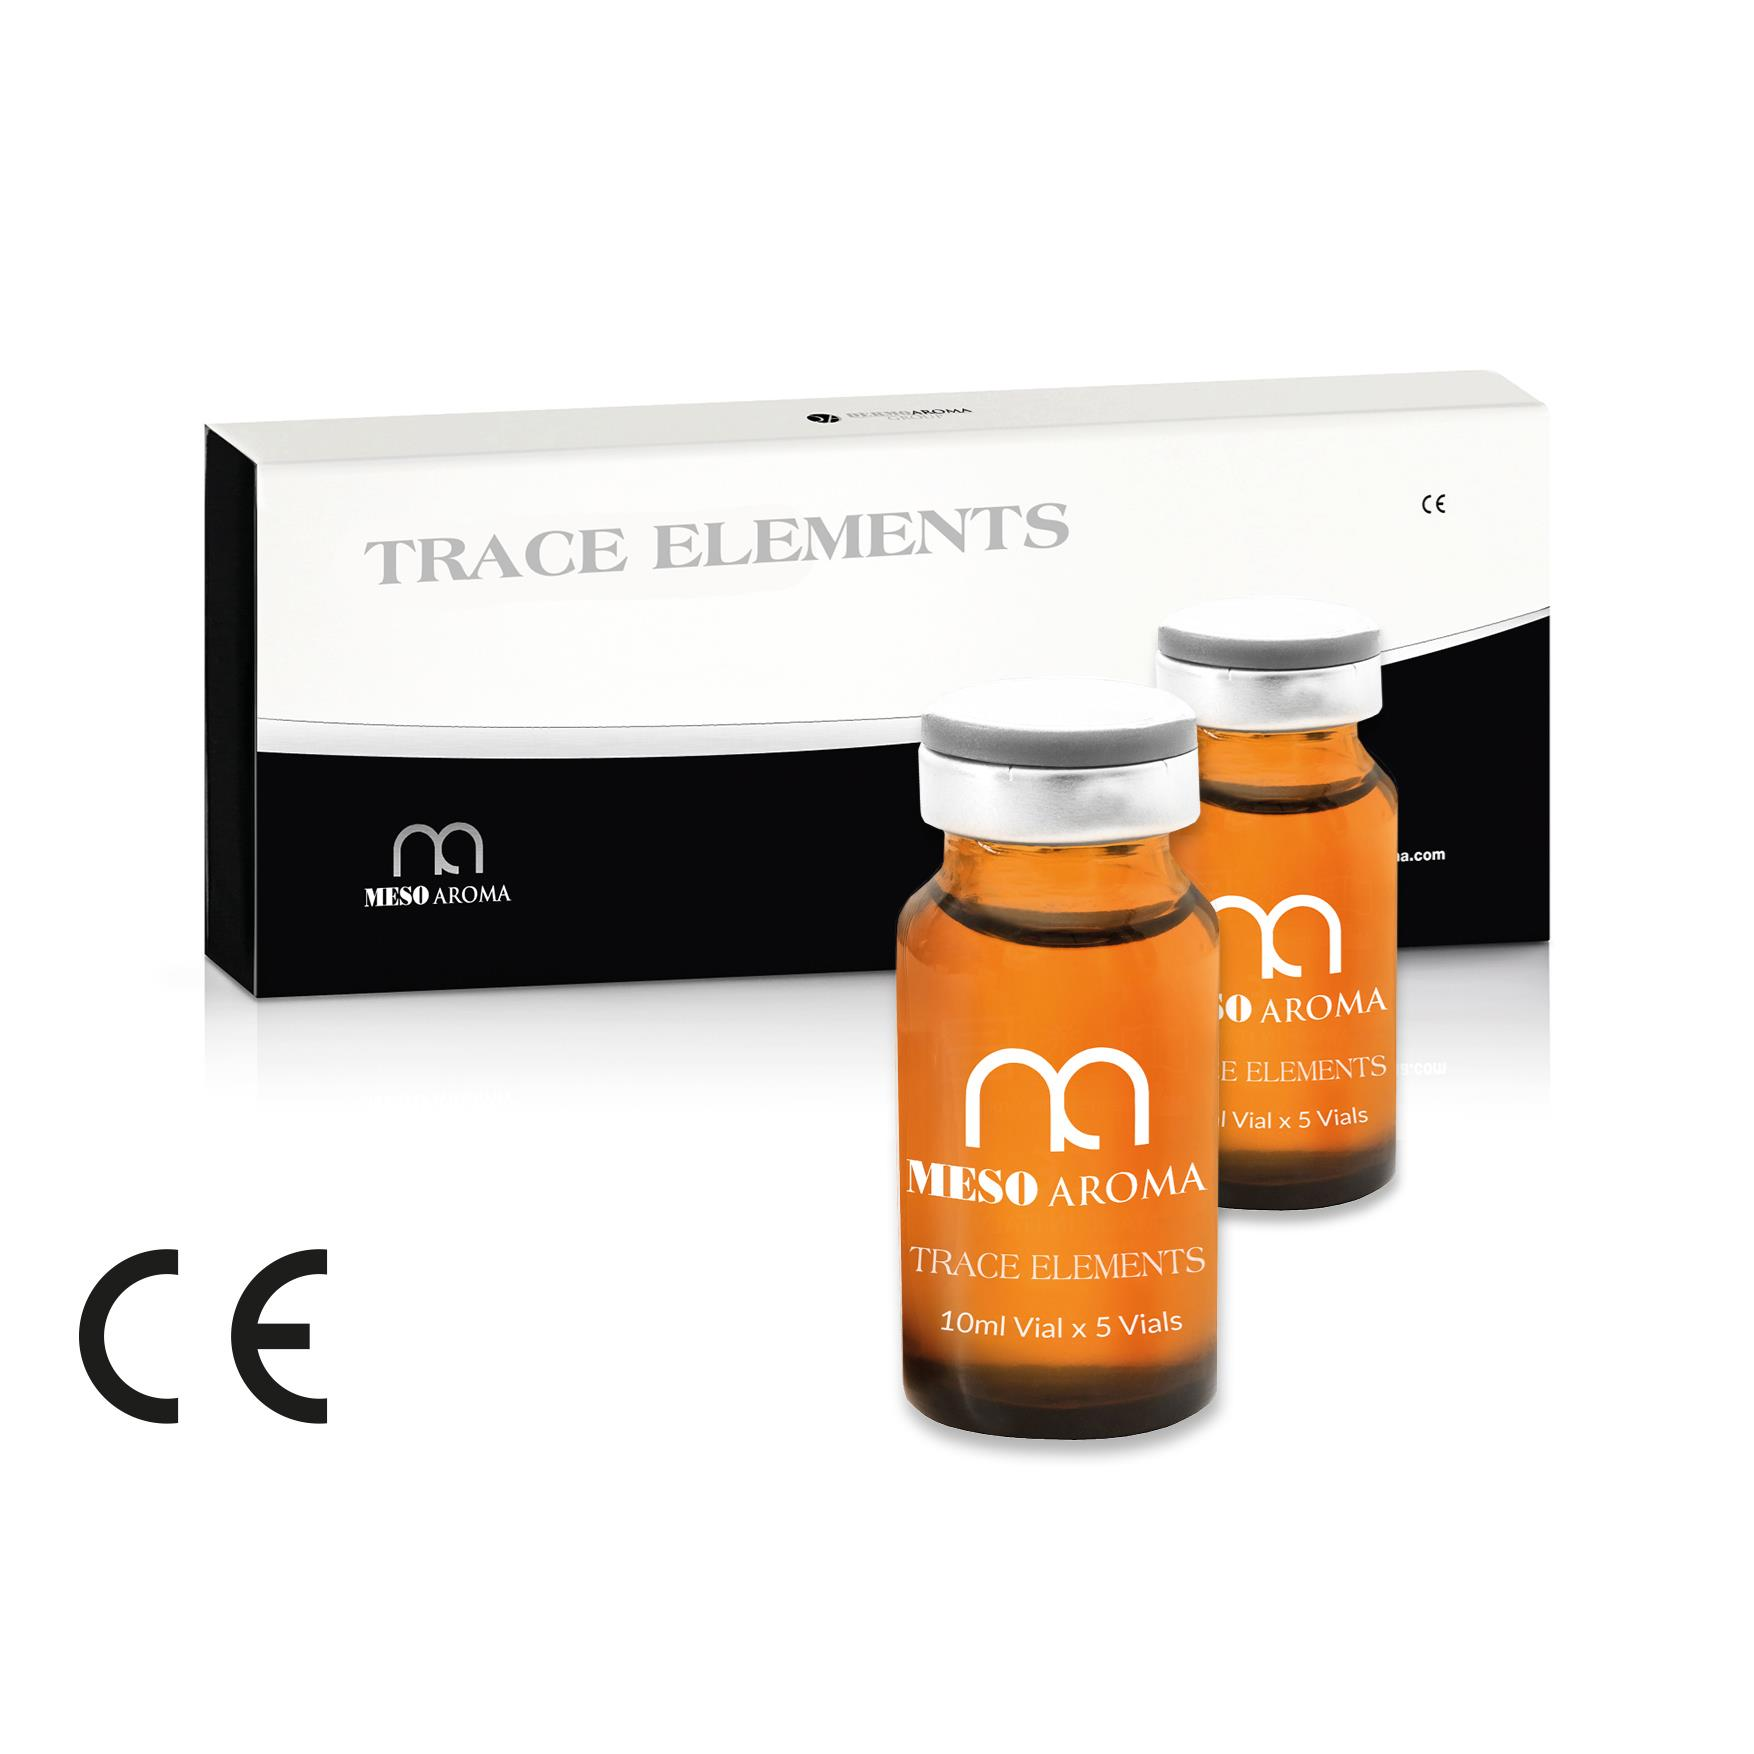 ampulka-do-mezoterapii-trace-elements-mesoaroma-oligoelementy-antiaging-10ml